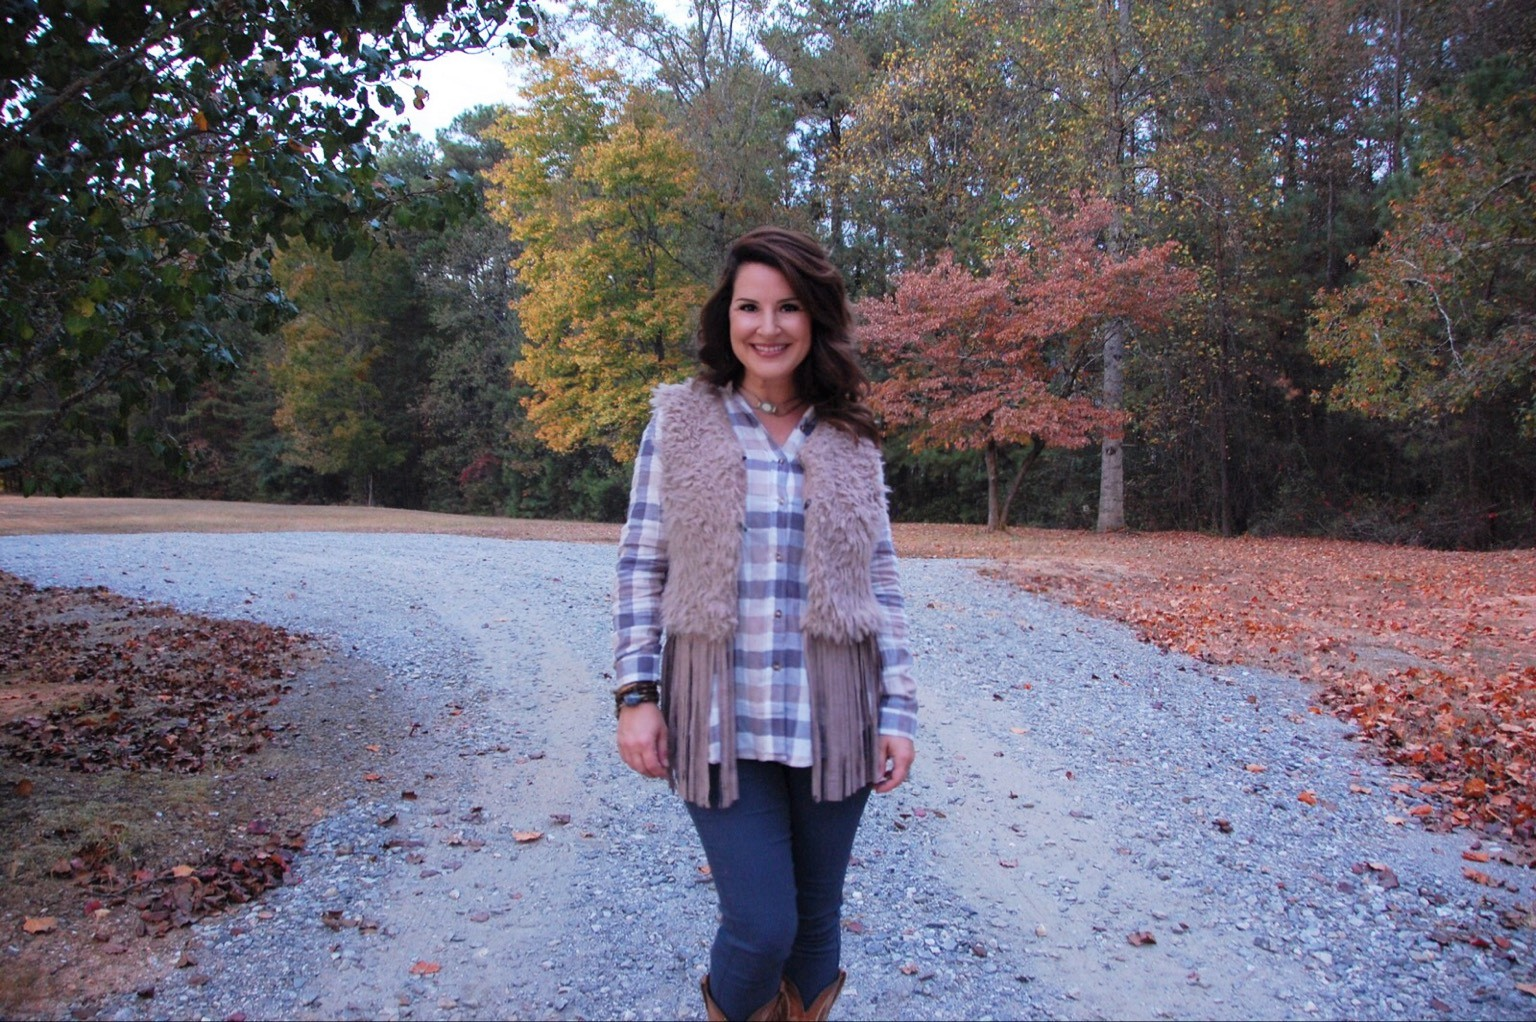 The outfit from fabulousgood.com is a shearling fringe vest paired with a plaid shirt, denim and cowboy boots